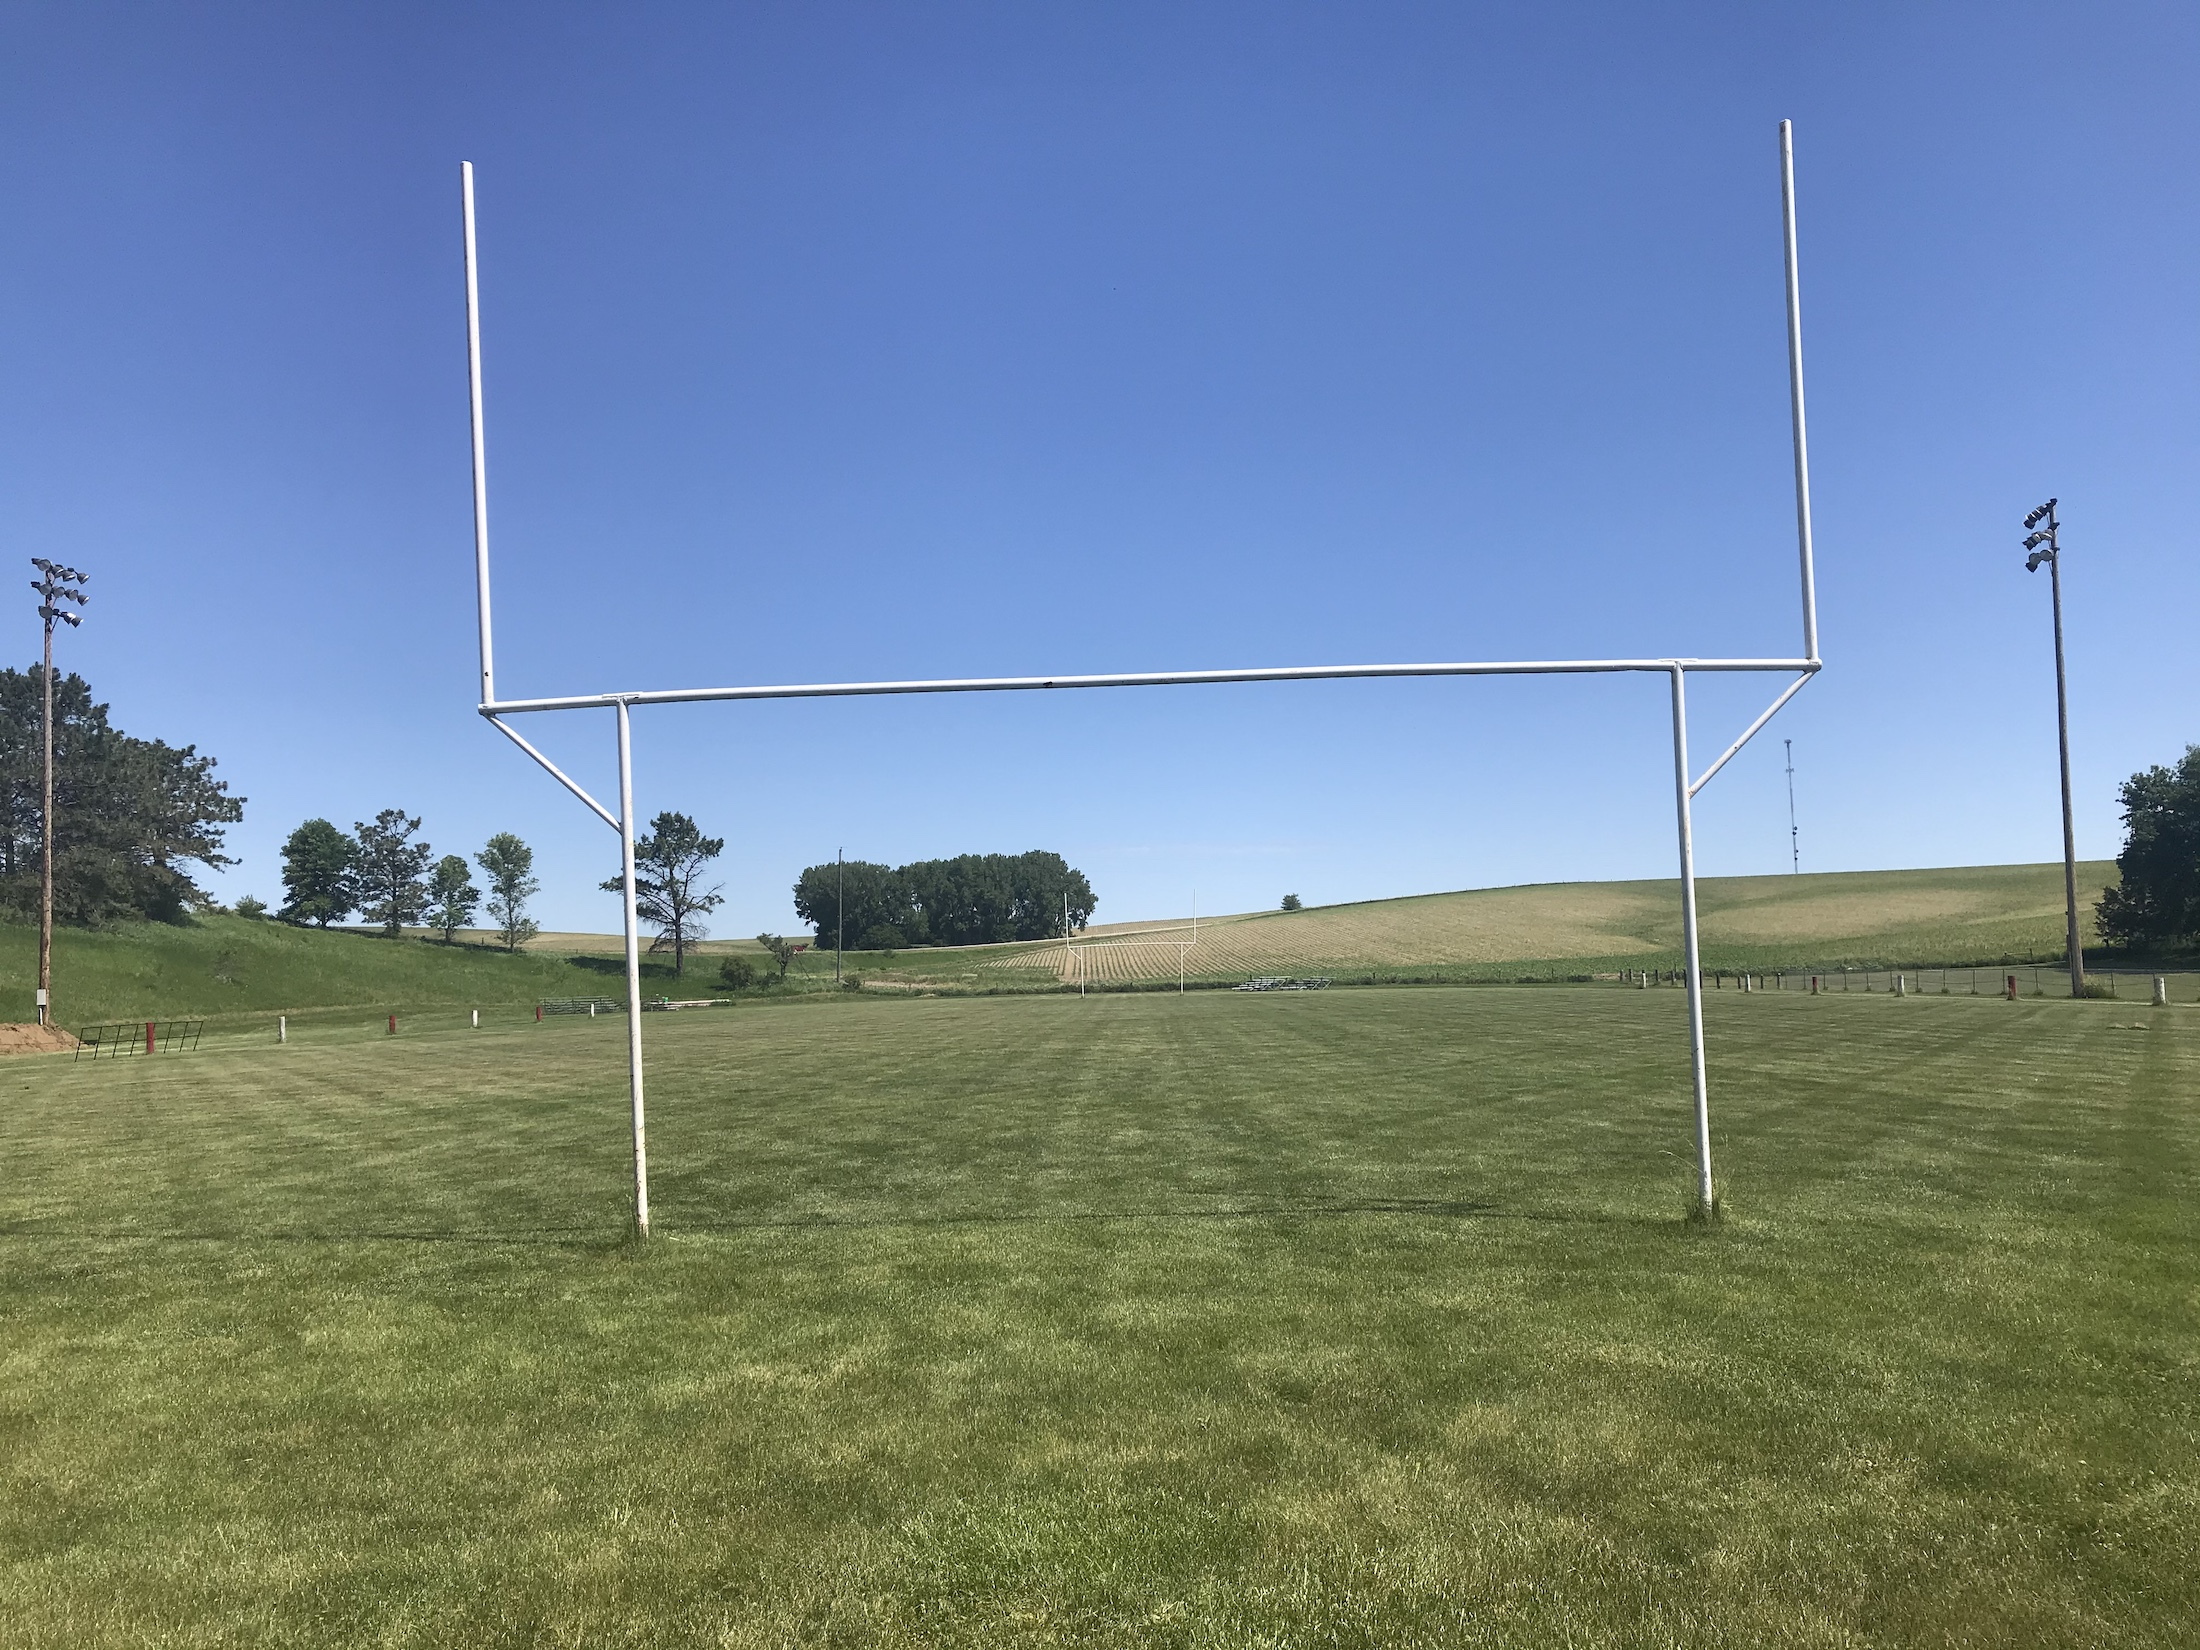 End zone view of Jim Winch Memorial Football Field